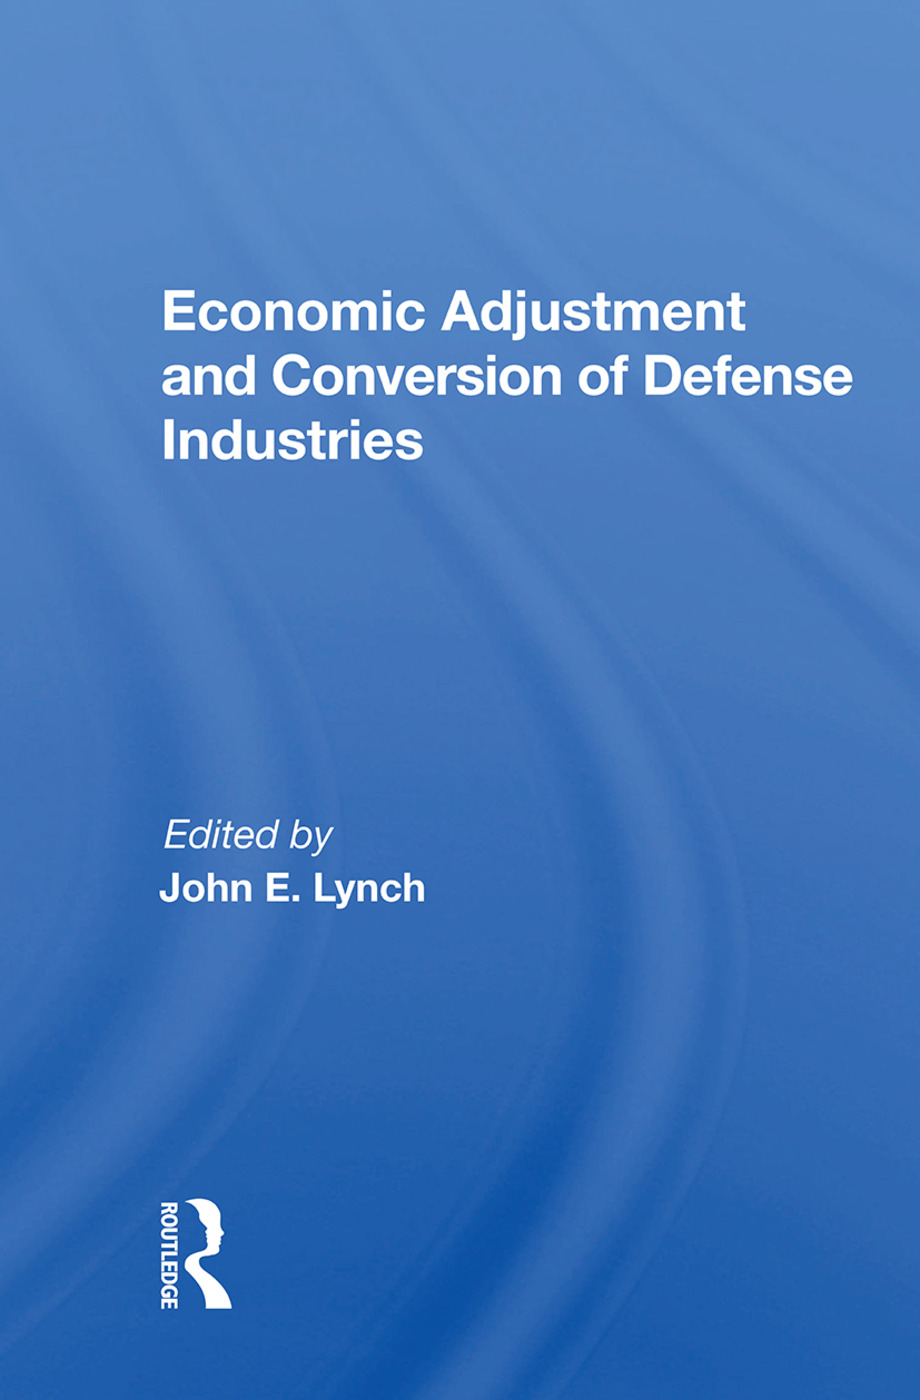 Defense-Related Employment for Selected Weapon Systems